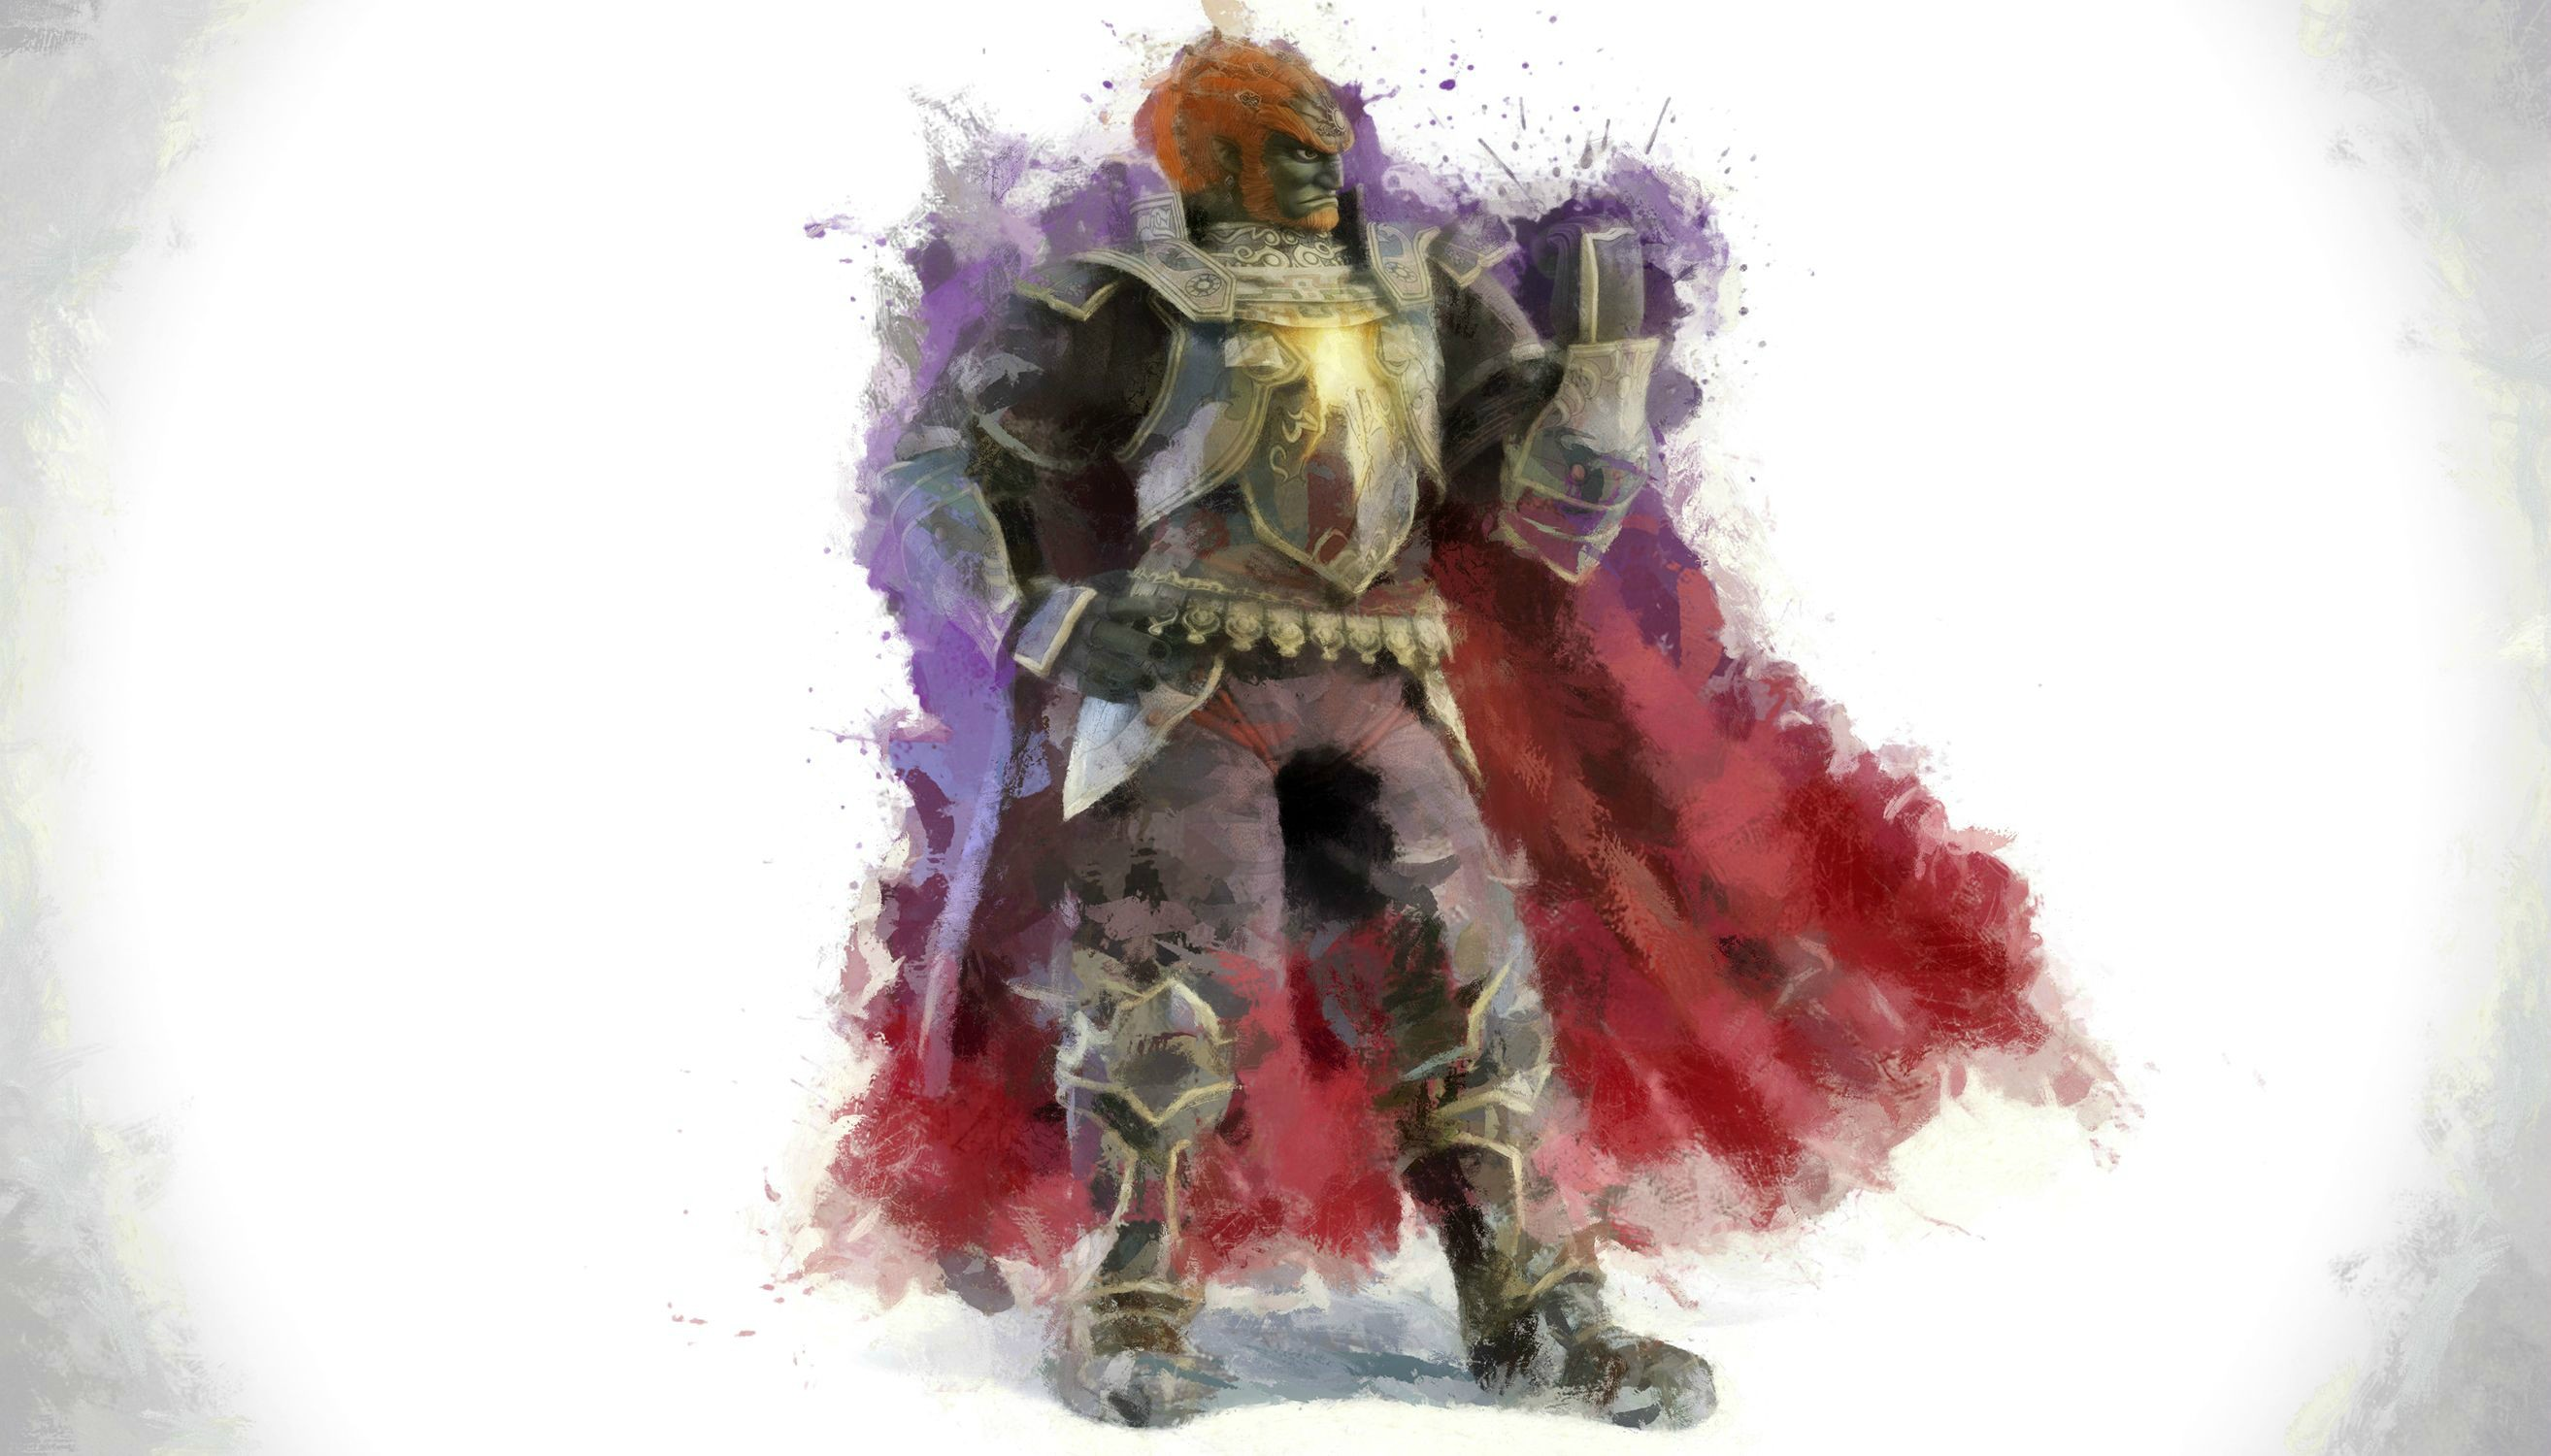 Super Smash Bros Ganondorf Hd 1850715 Hd Wallpaper